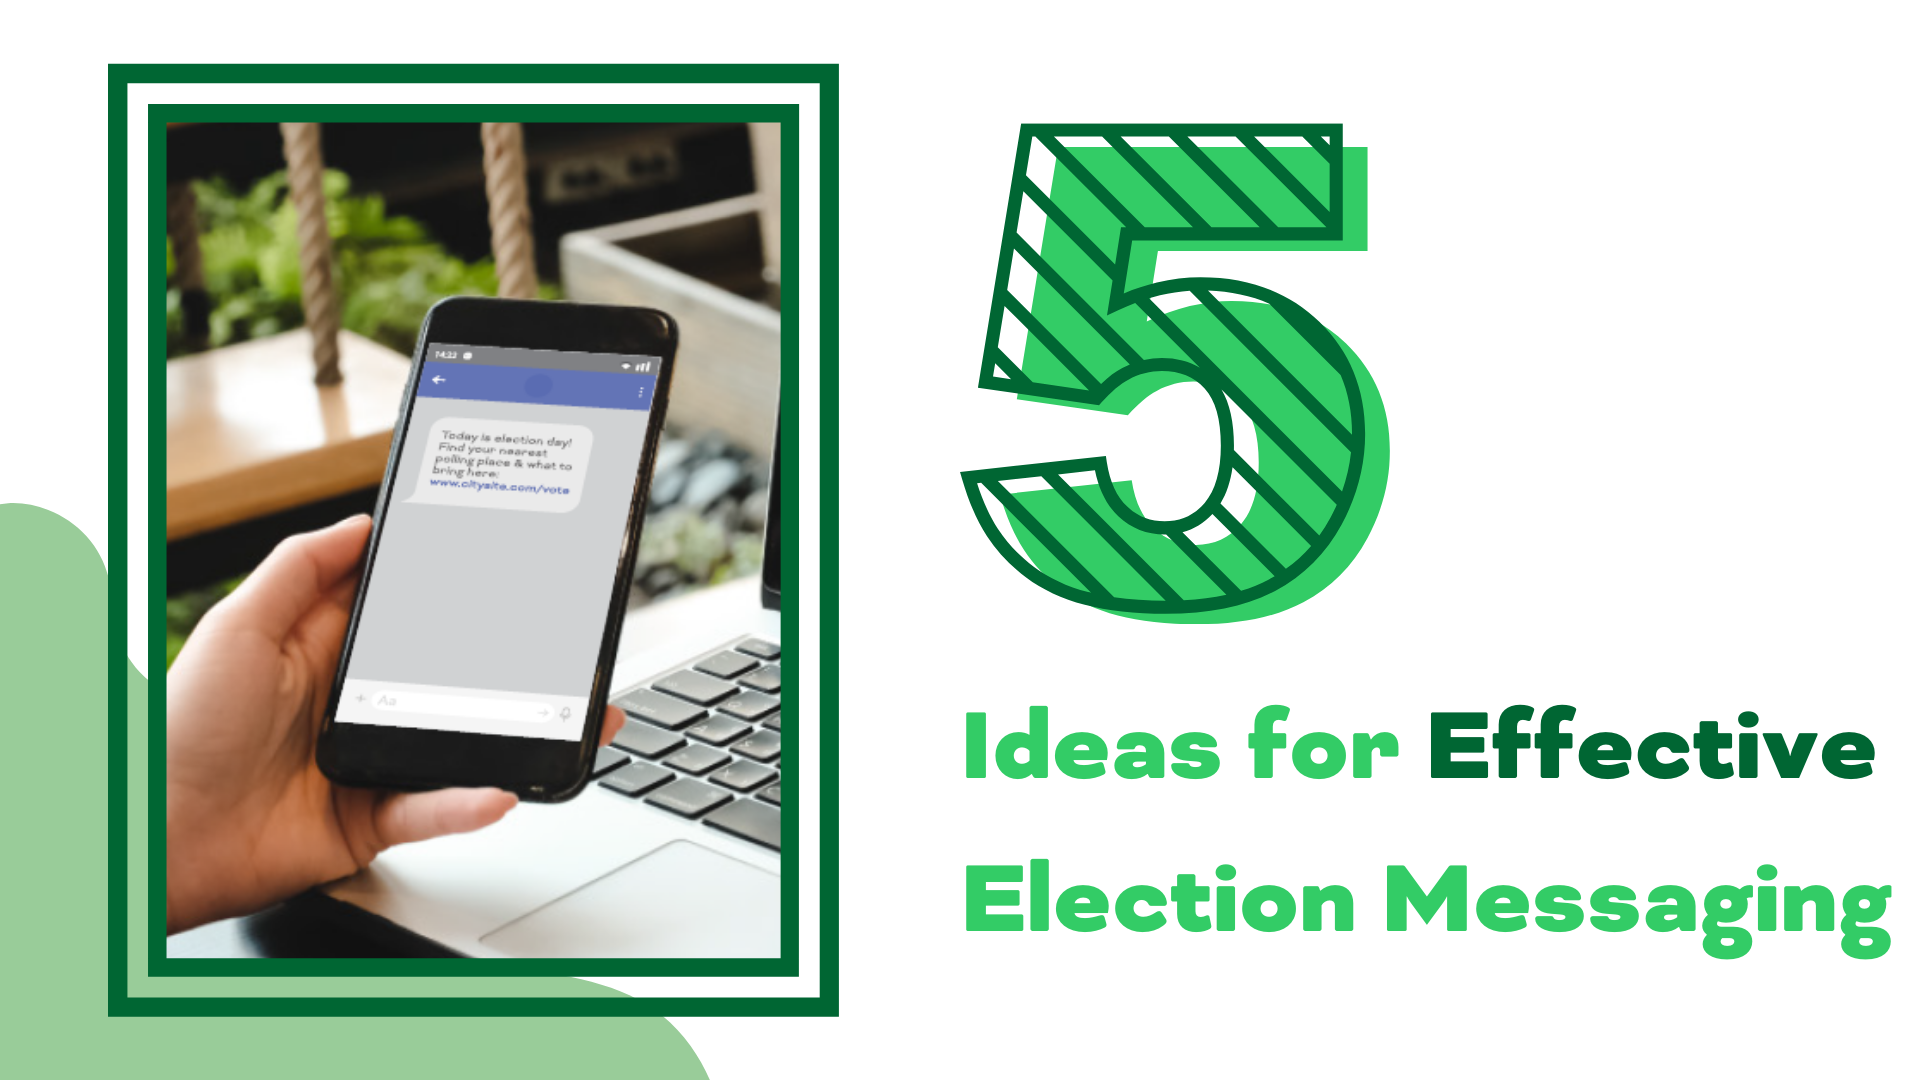 Blog post for 5 ideas for effective election messaging for local government | rocksolid.com